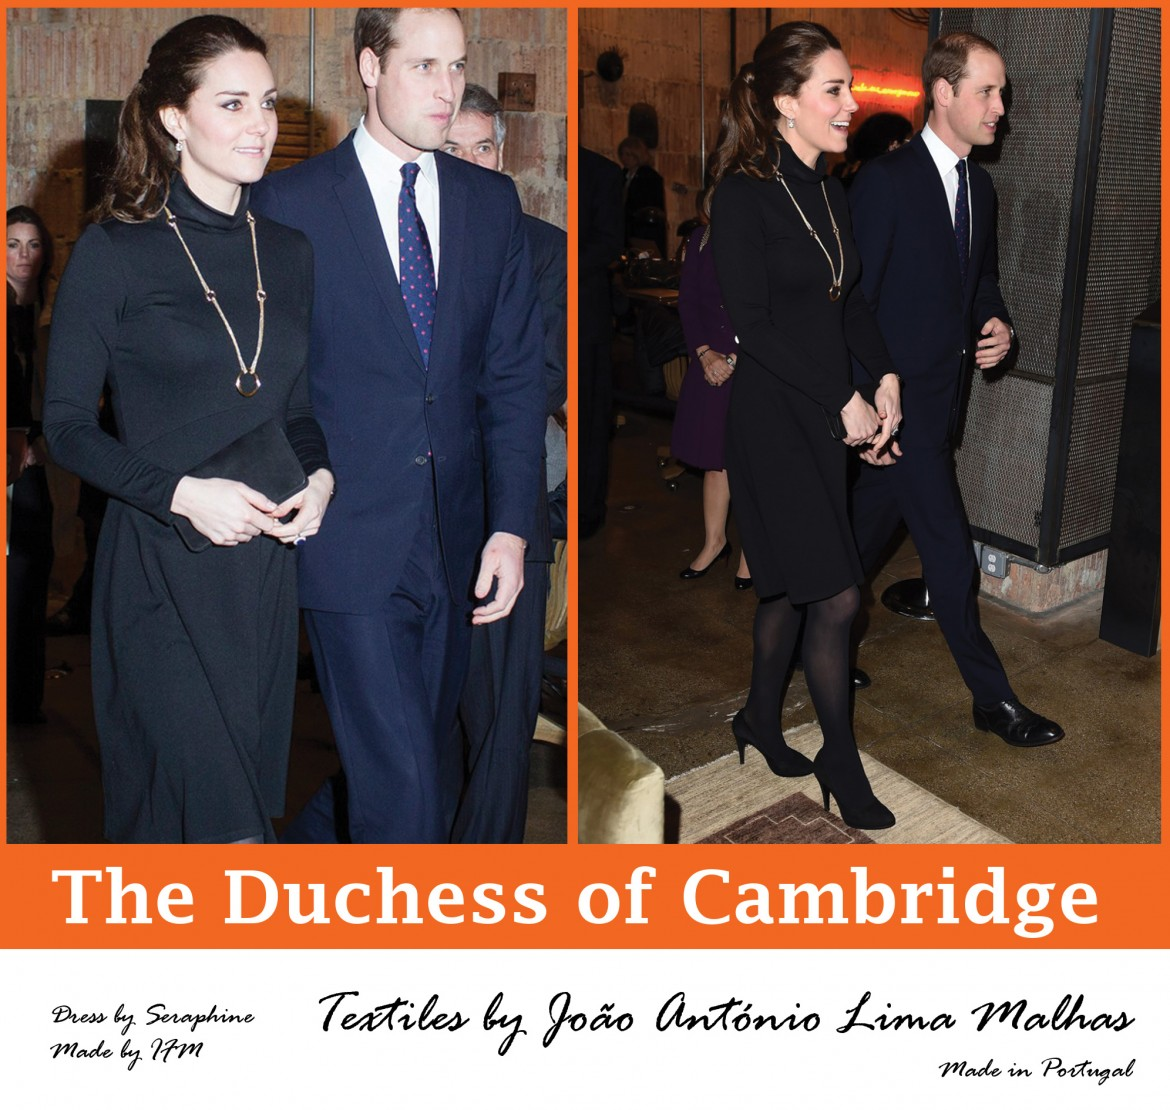 cambridgeduchess_en